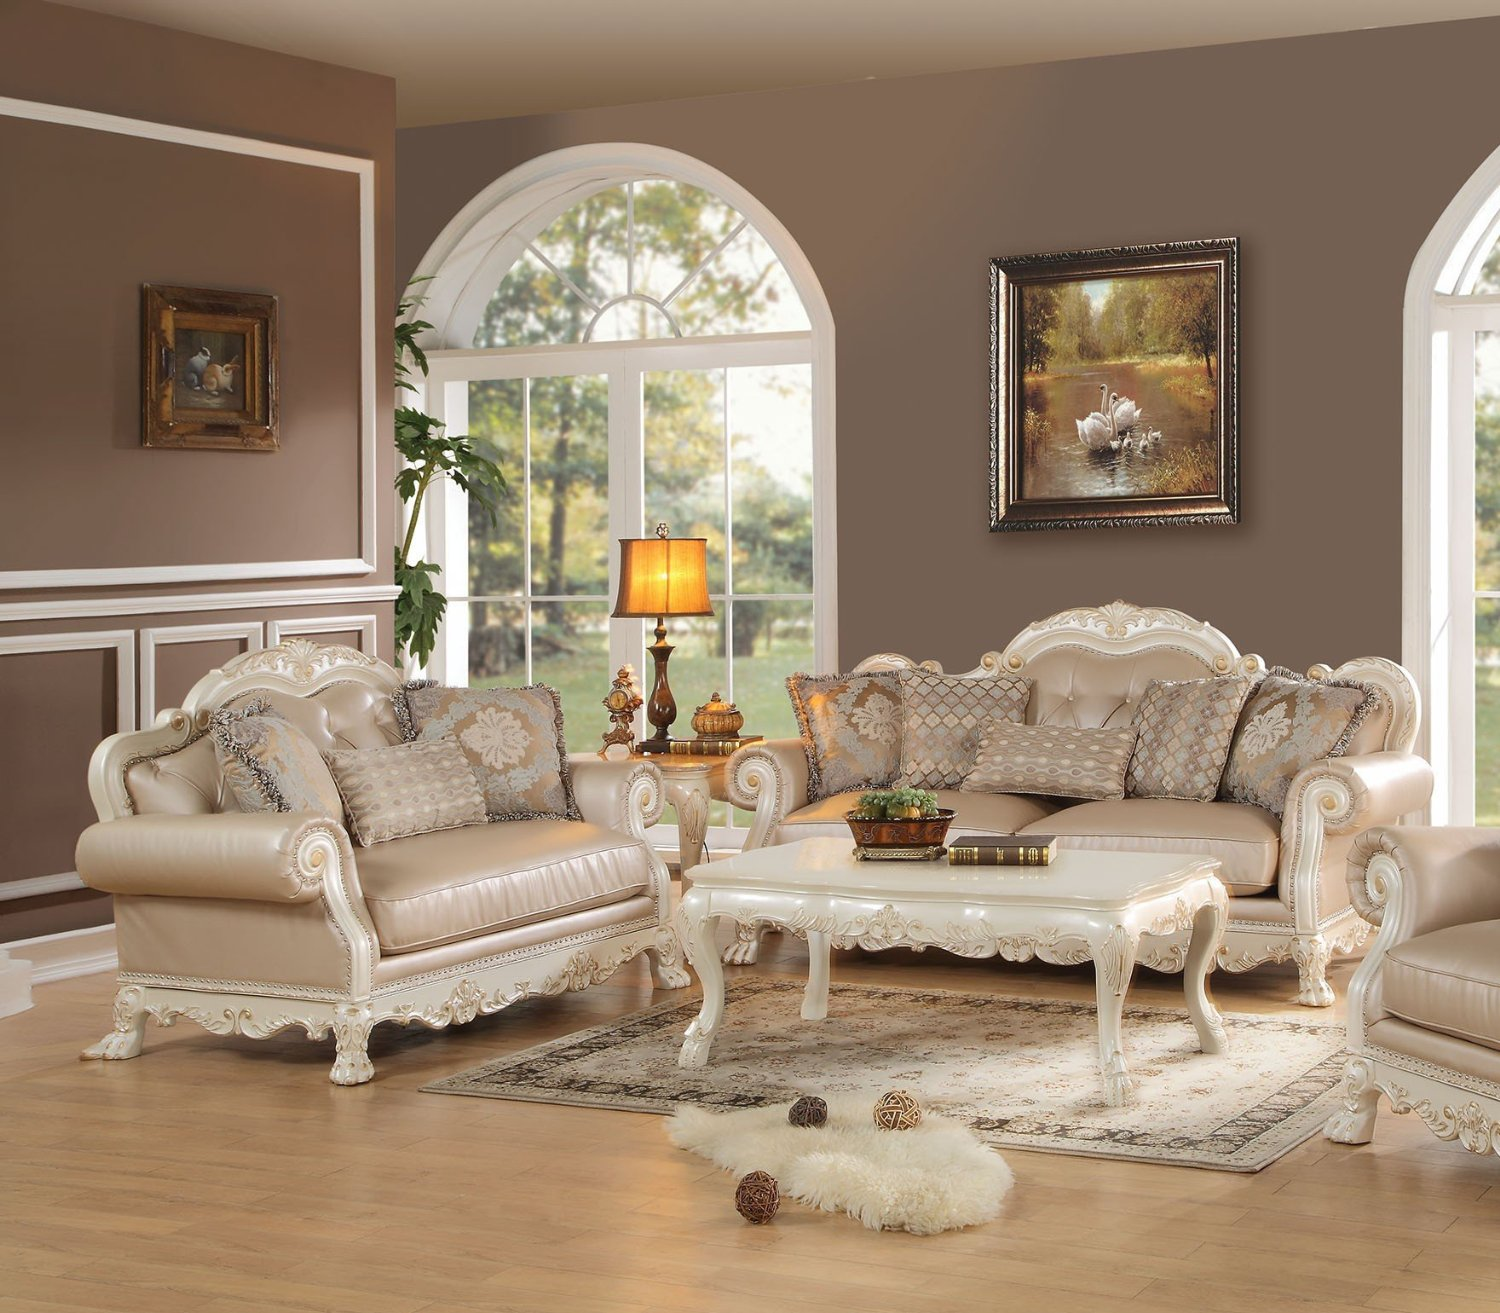 Get Quotations · 1PerfectChoice Dresden 2Pcs PU Antique White Sofa Set With  Pillows